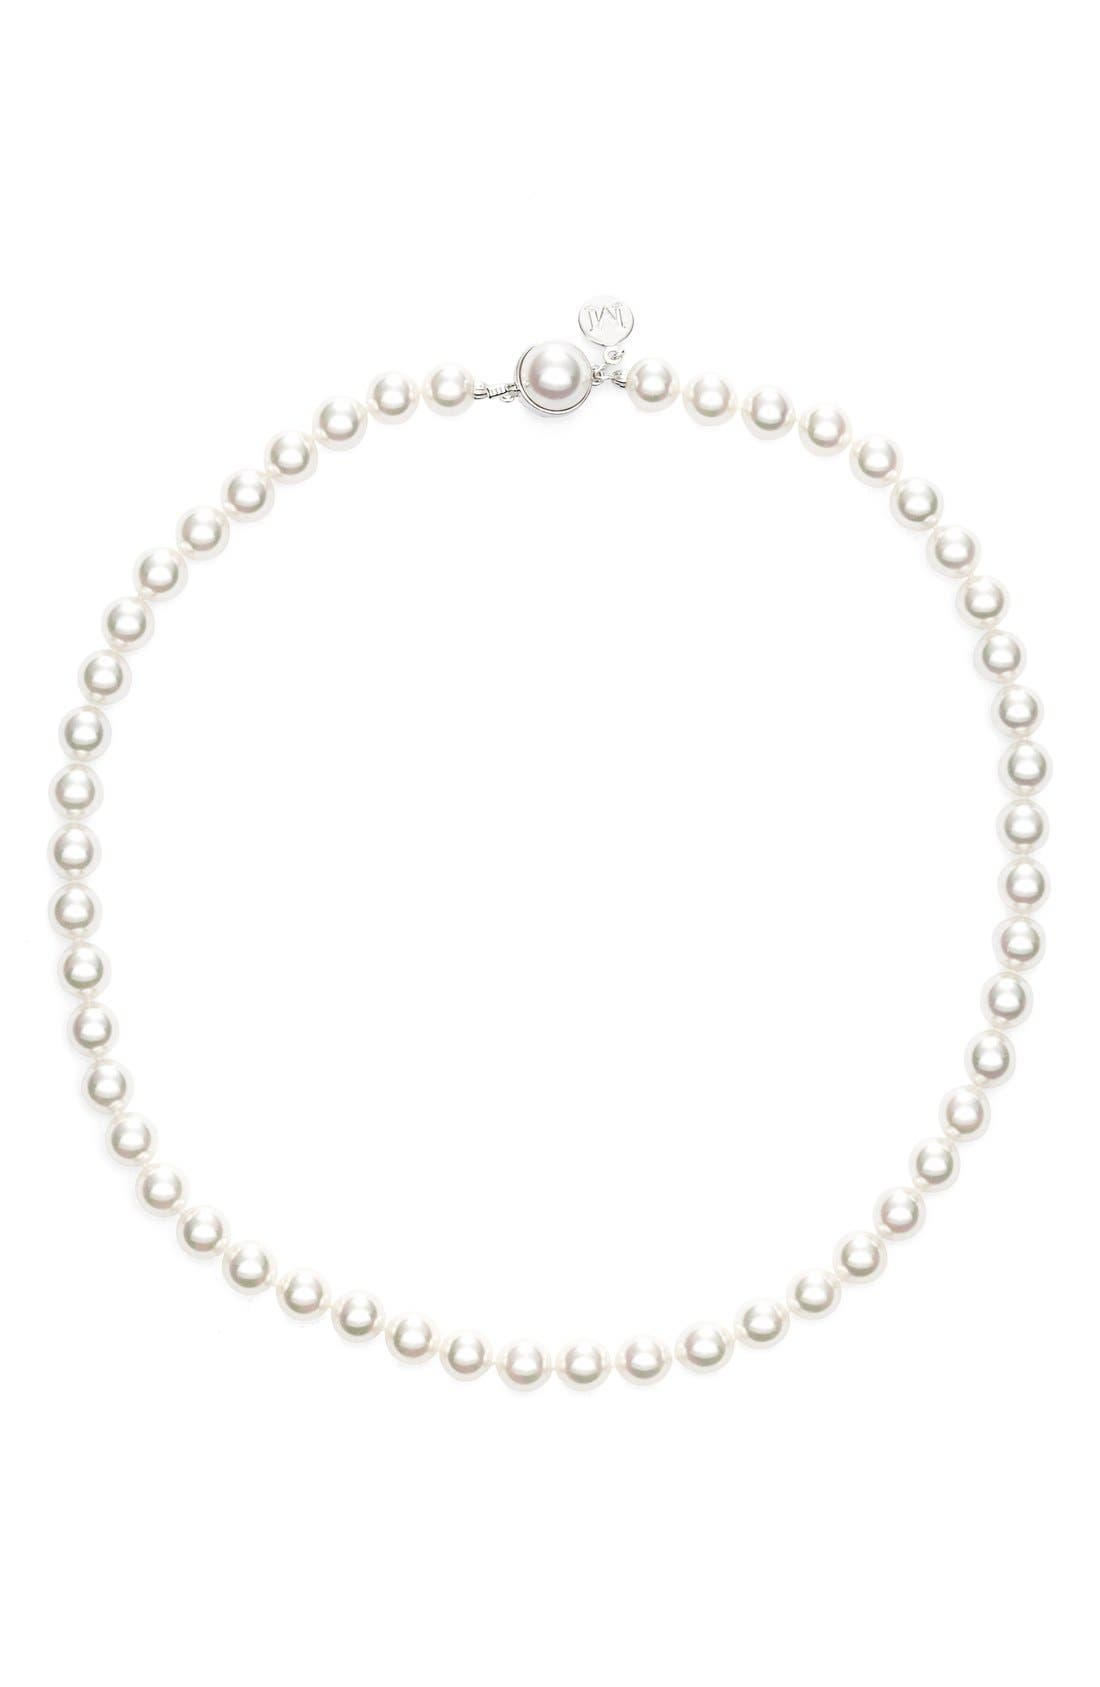 Alternate Image 1 Selected - Majorica 8mm Pearl Choker Necklace (Nordstrom Online Exclusive)